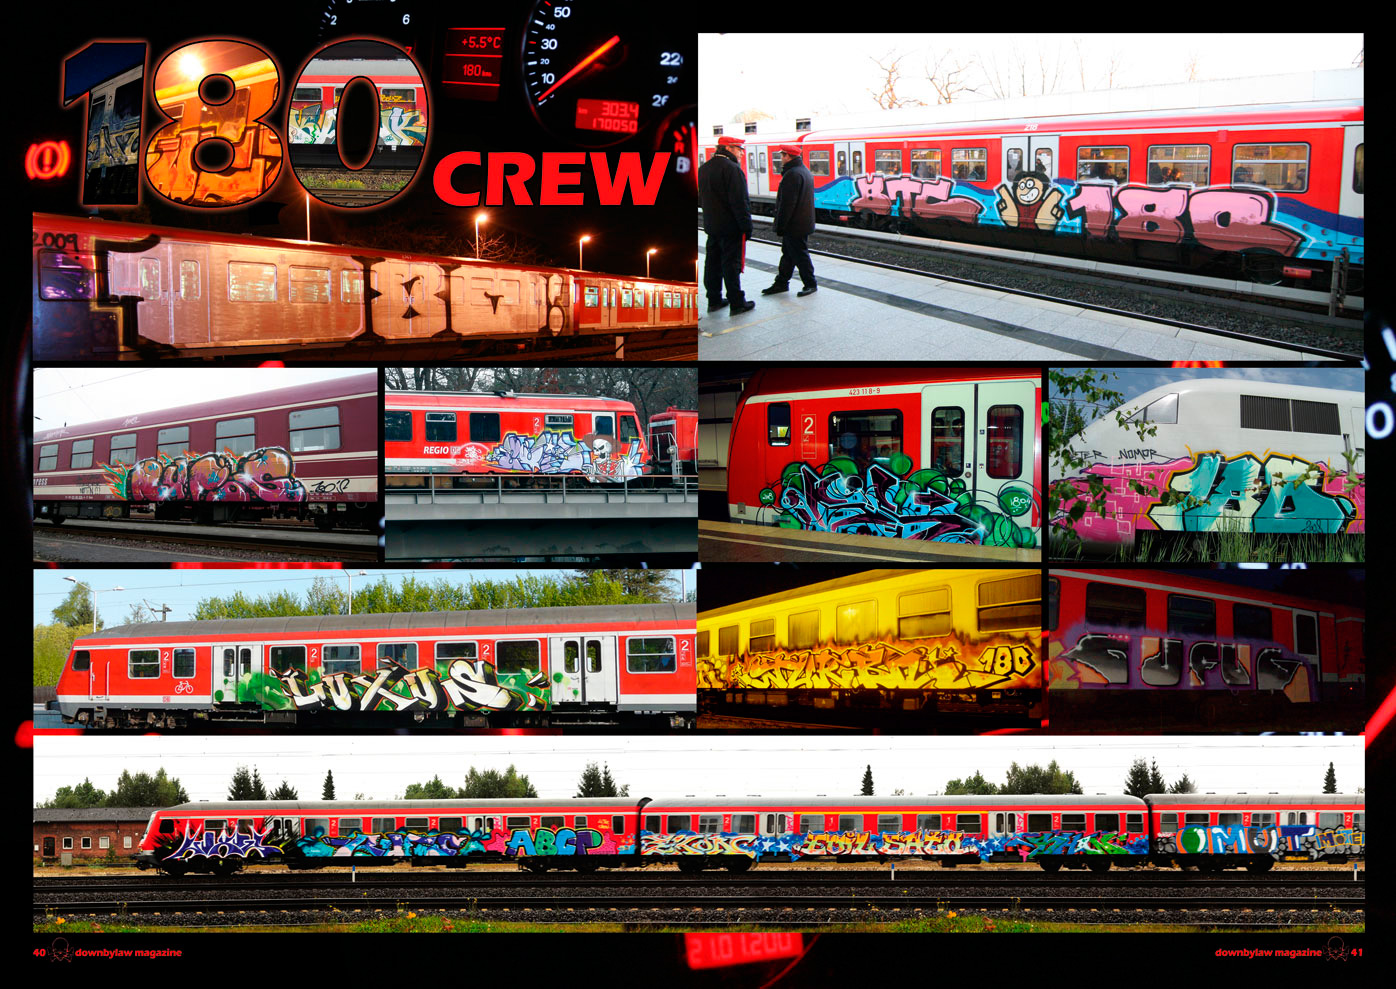 downbylaw_magazine_6_180_crew_graffiti